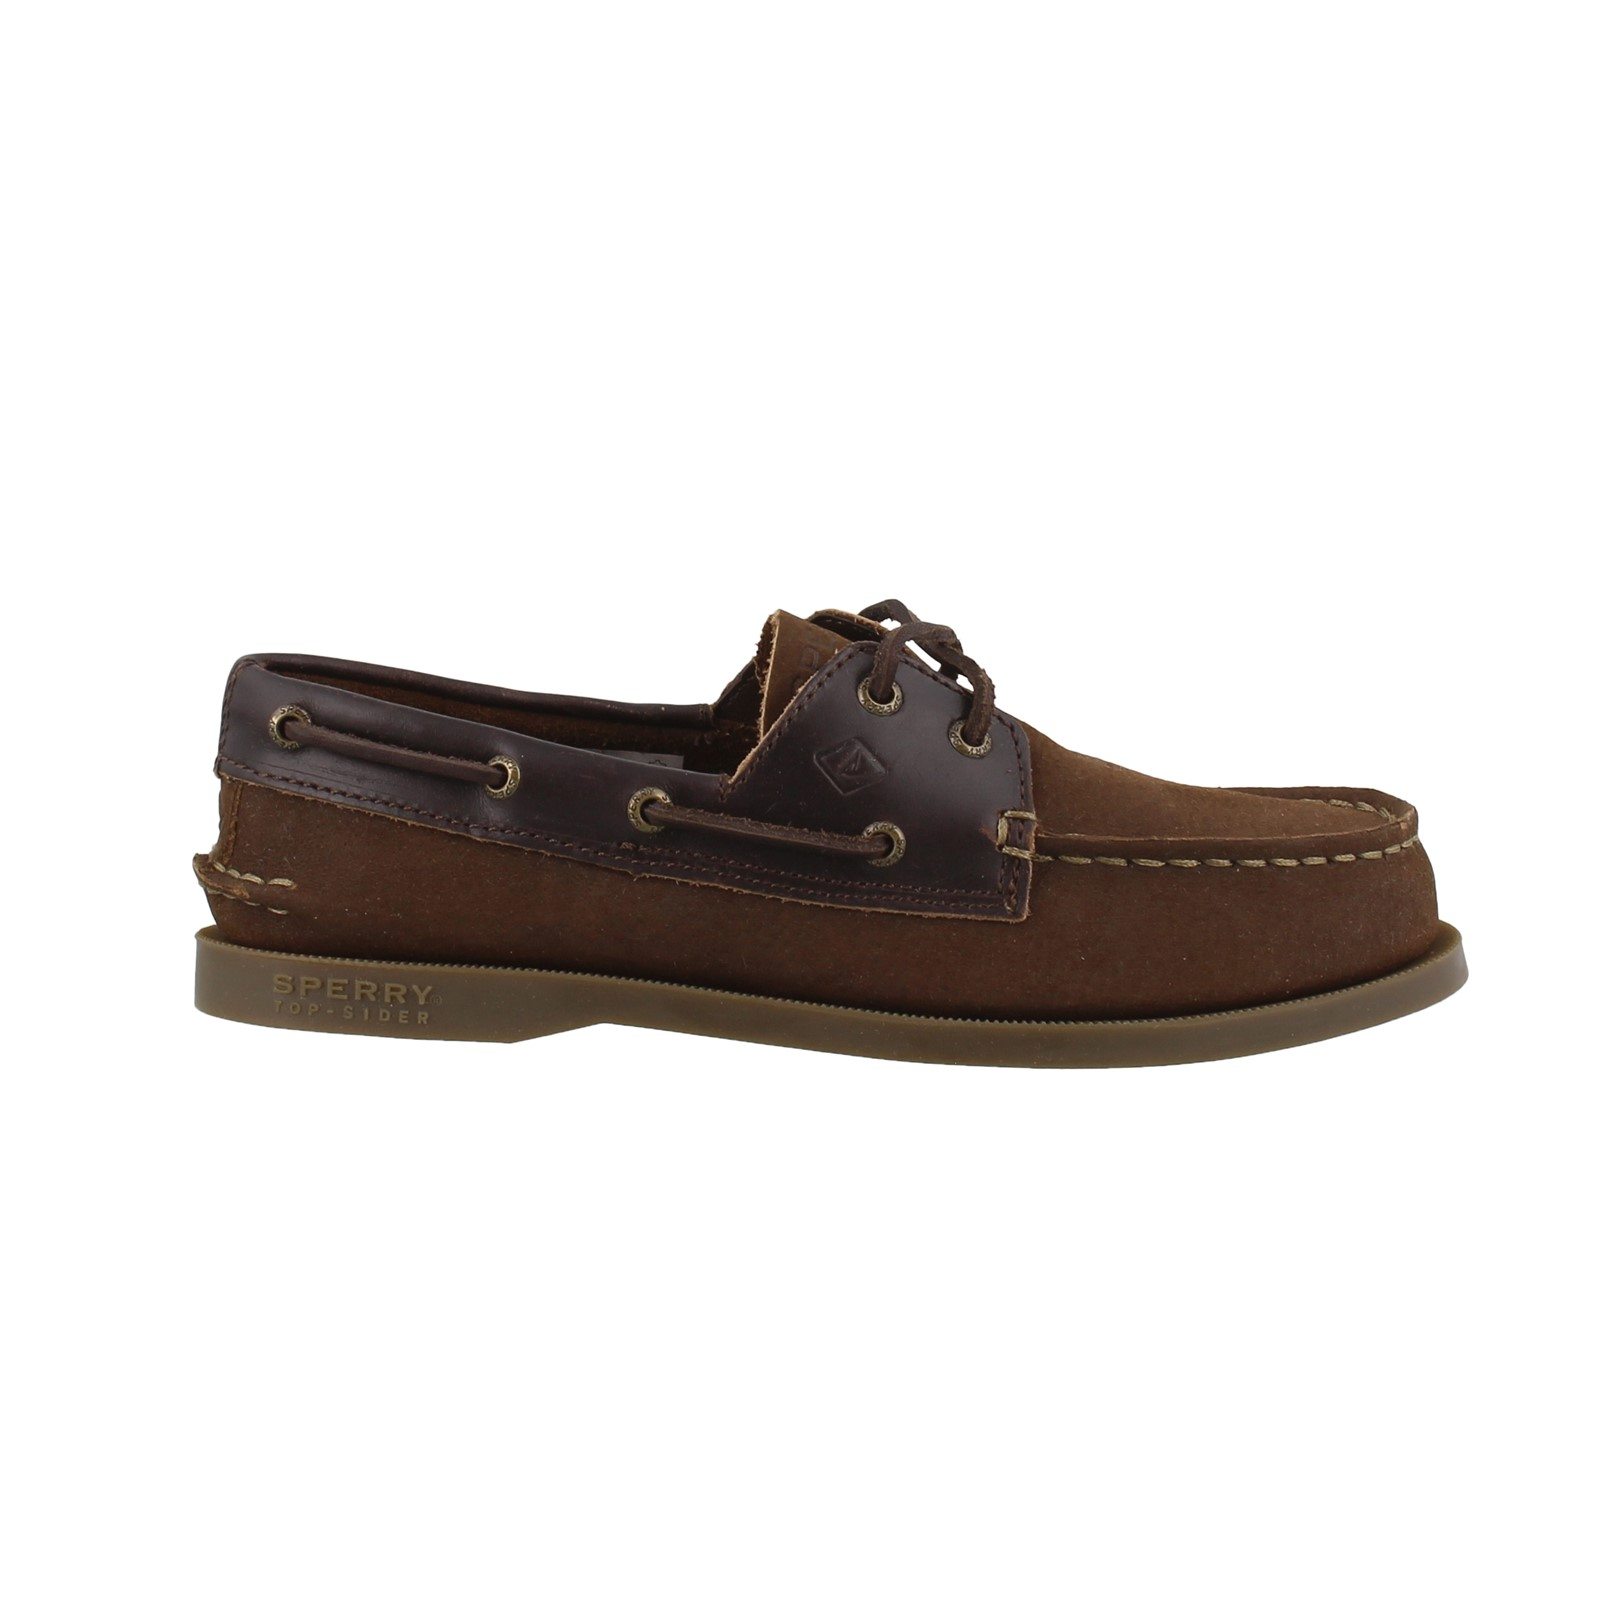 Boy's Sperry, Authentic Original Boat Shoe - Little Kid & Big Kid